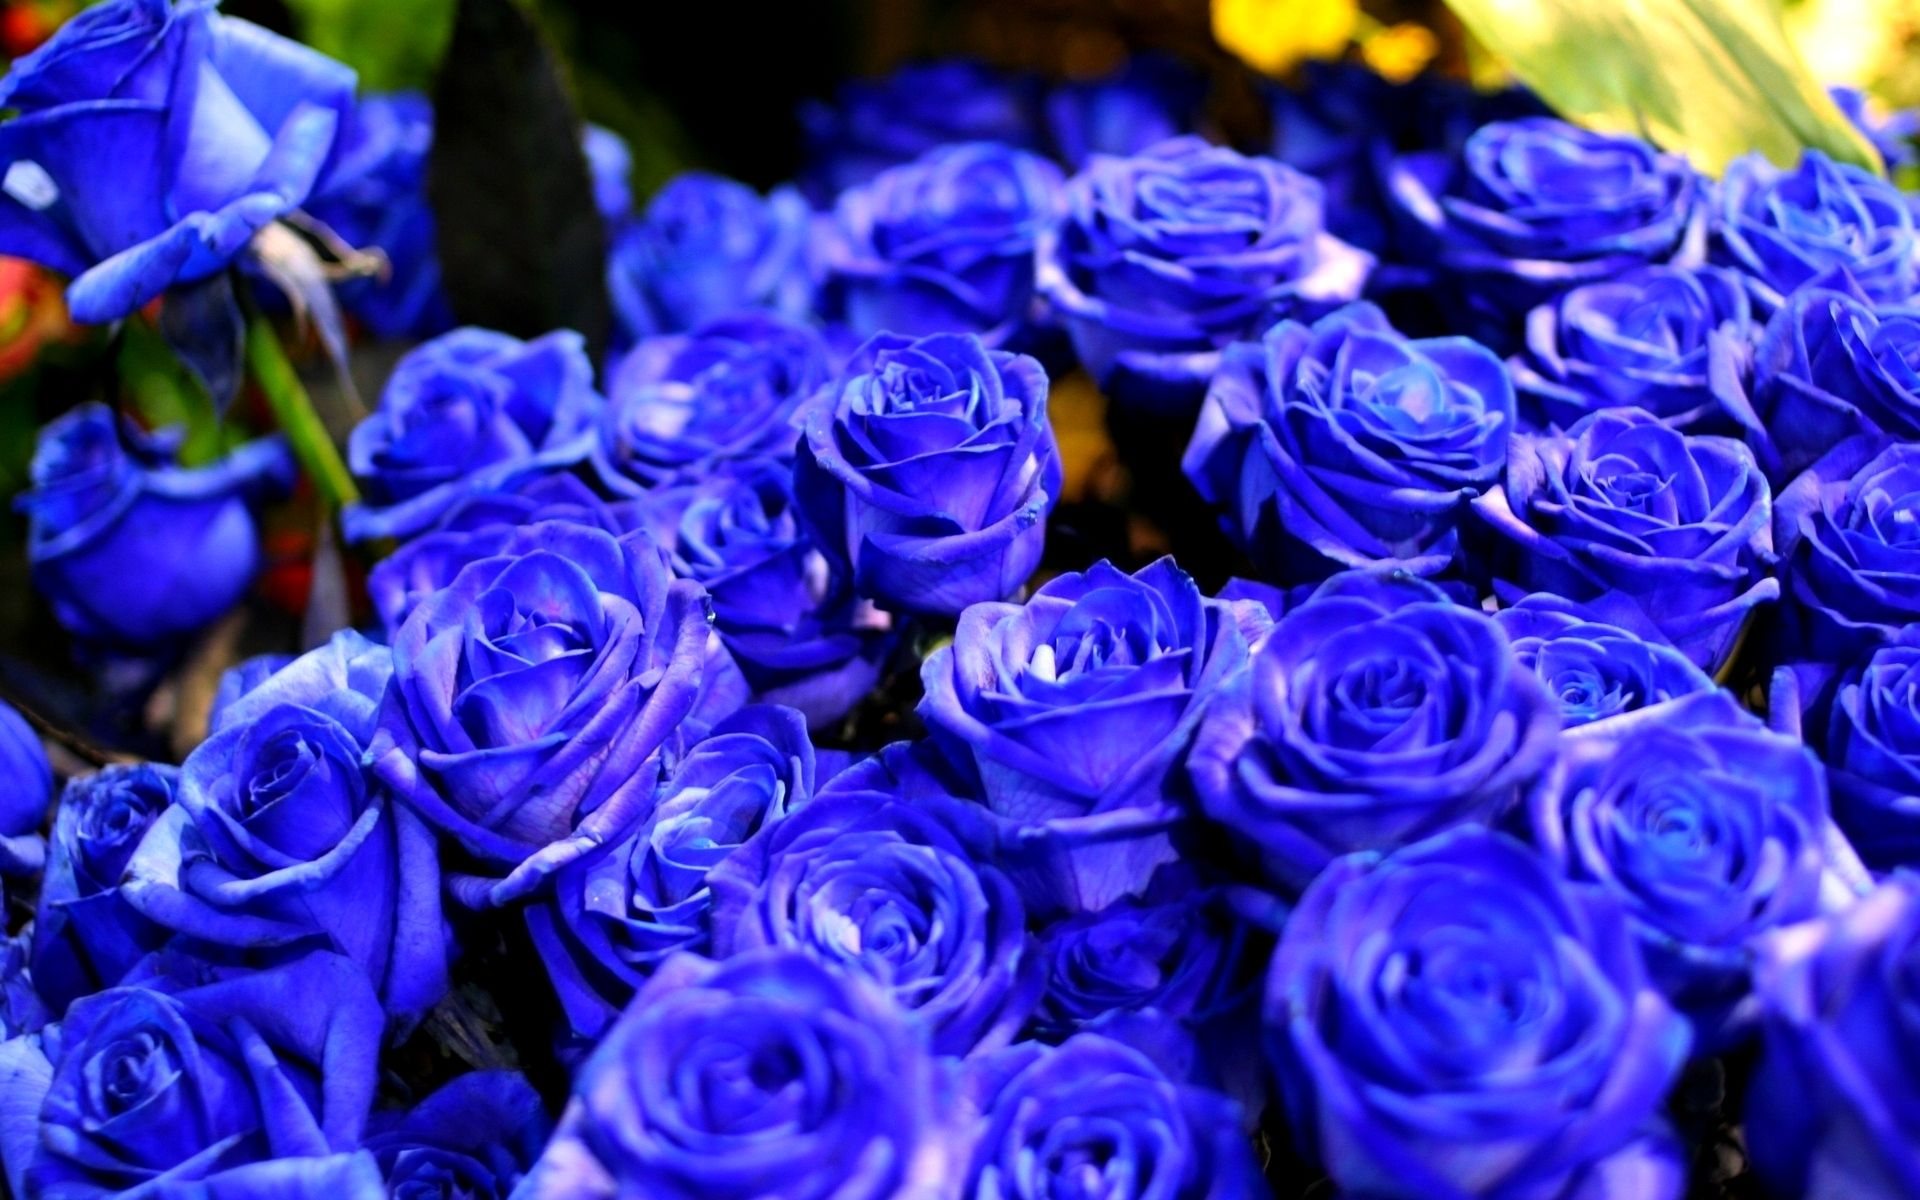 Hd Beautiful Blue Roses Wallpaper Download Free 54873 Blue Roses Wallpaper Blue Roses Blue Rose Bouquet